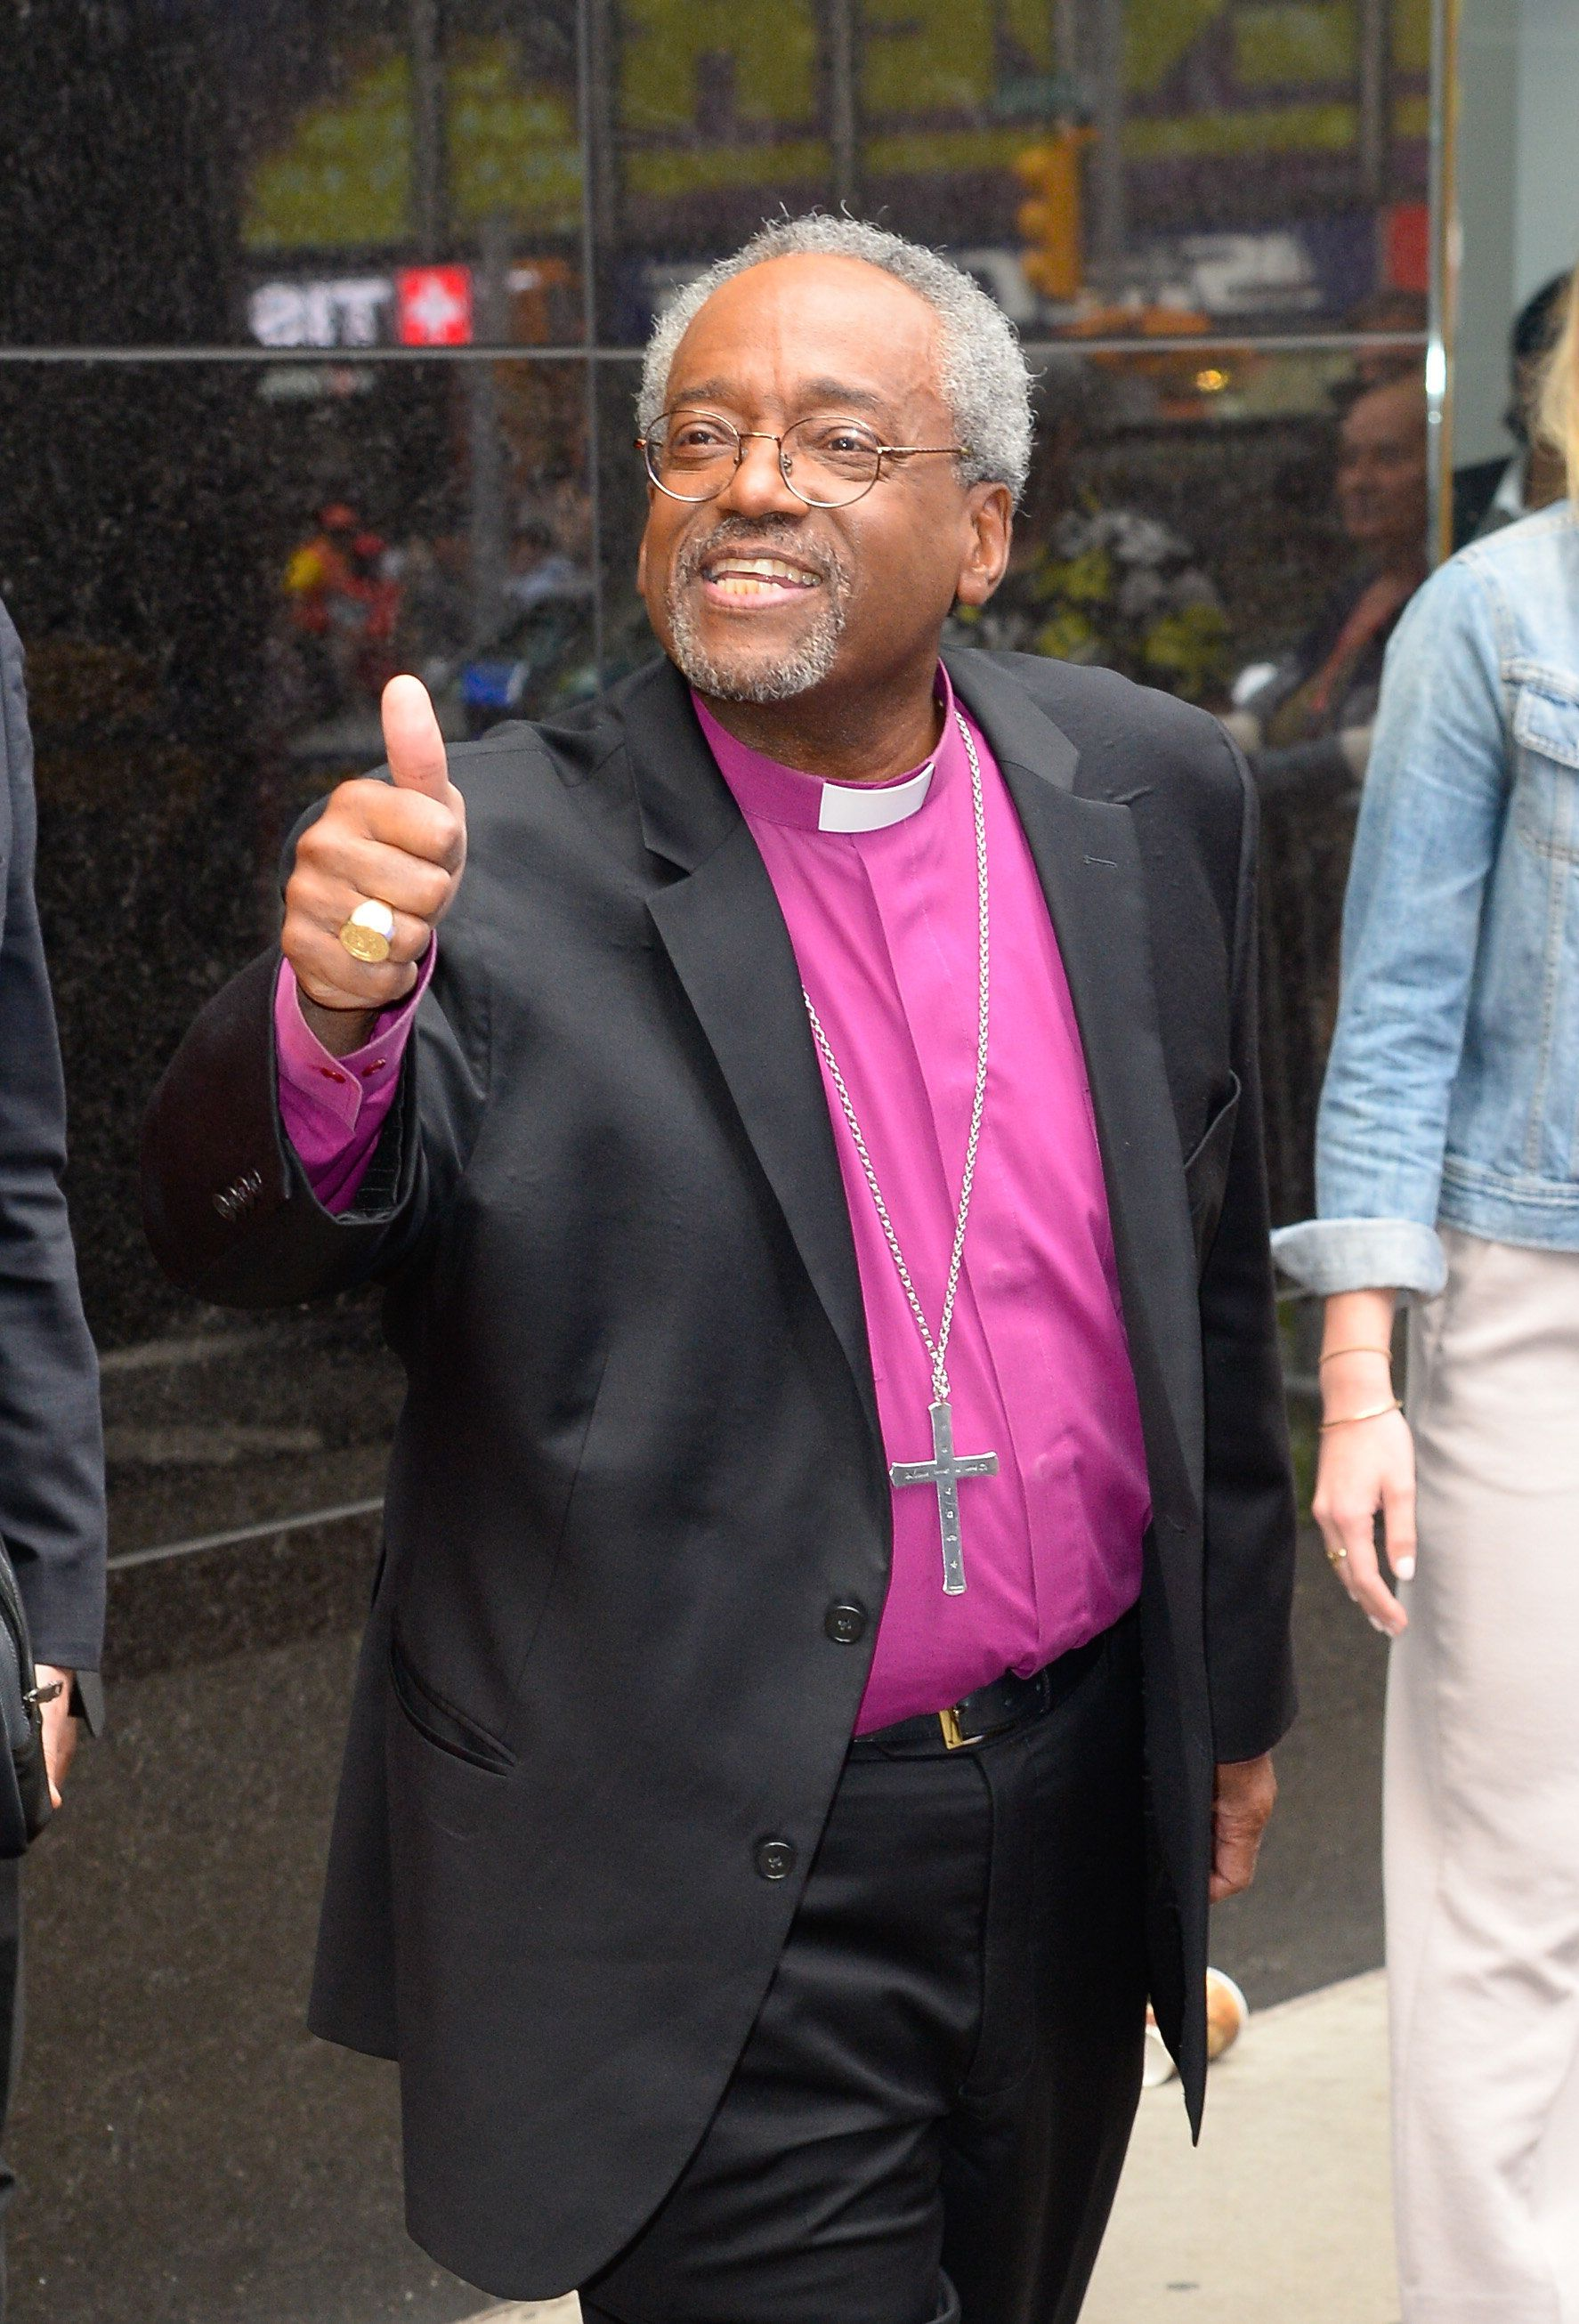 NEW YORK, NY - MAY 22:  Bishop Michael Curry is seen leaving 'Good Morning America' on May 22, 2018 in New York City.  (Photo by Raymond Hall/GC Images)